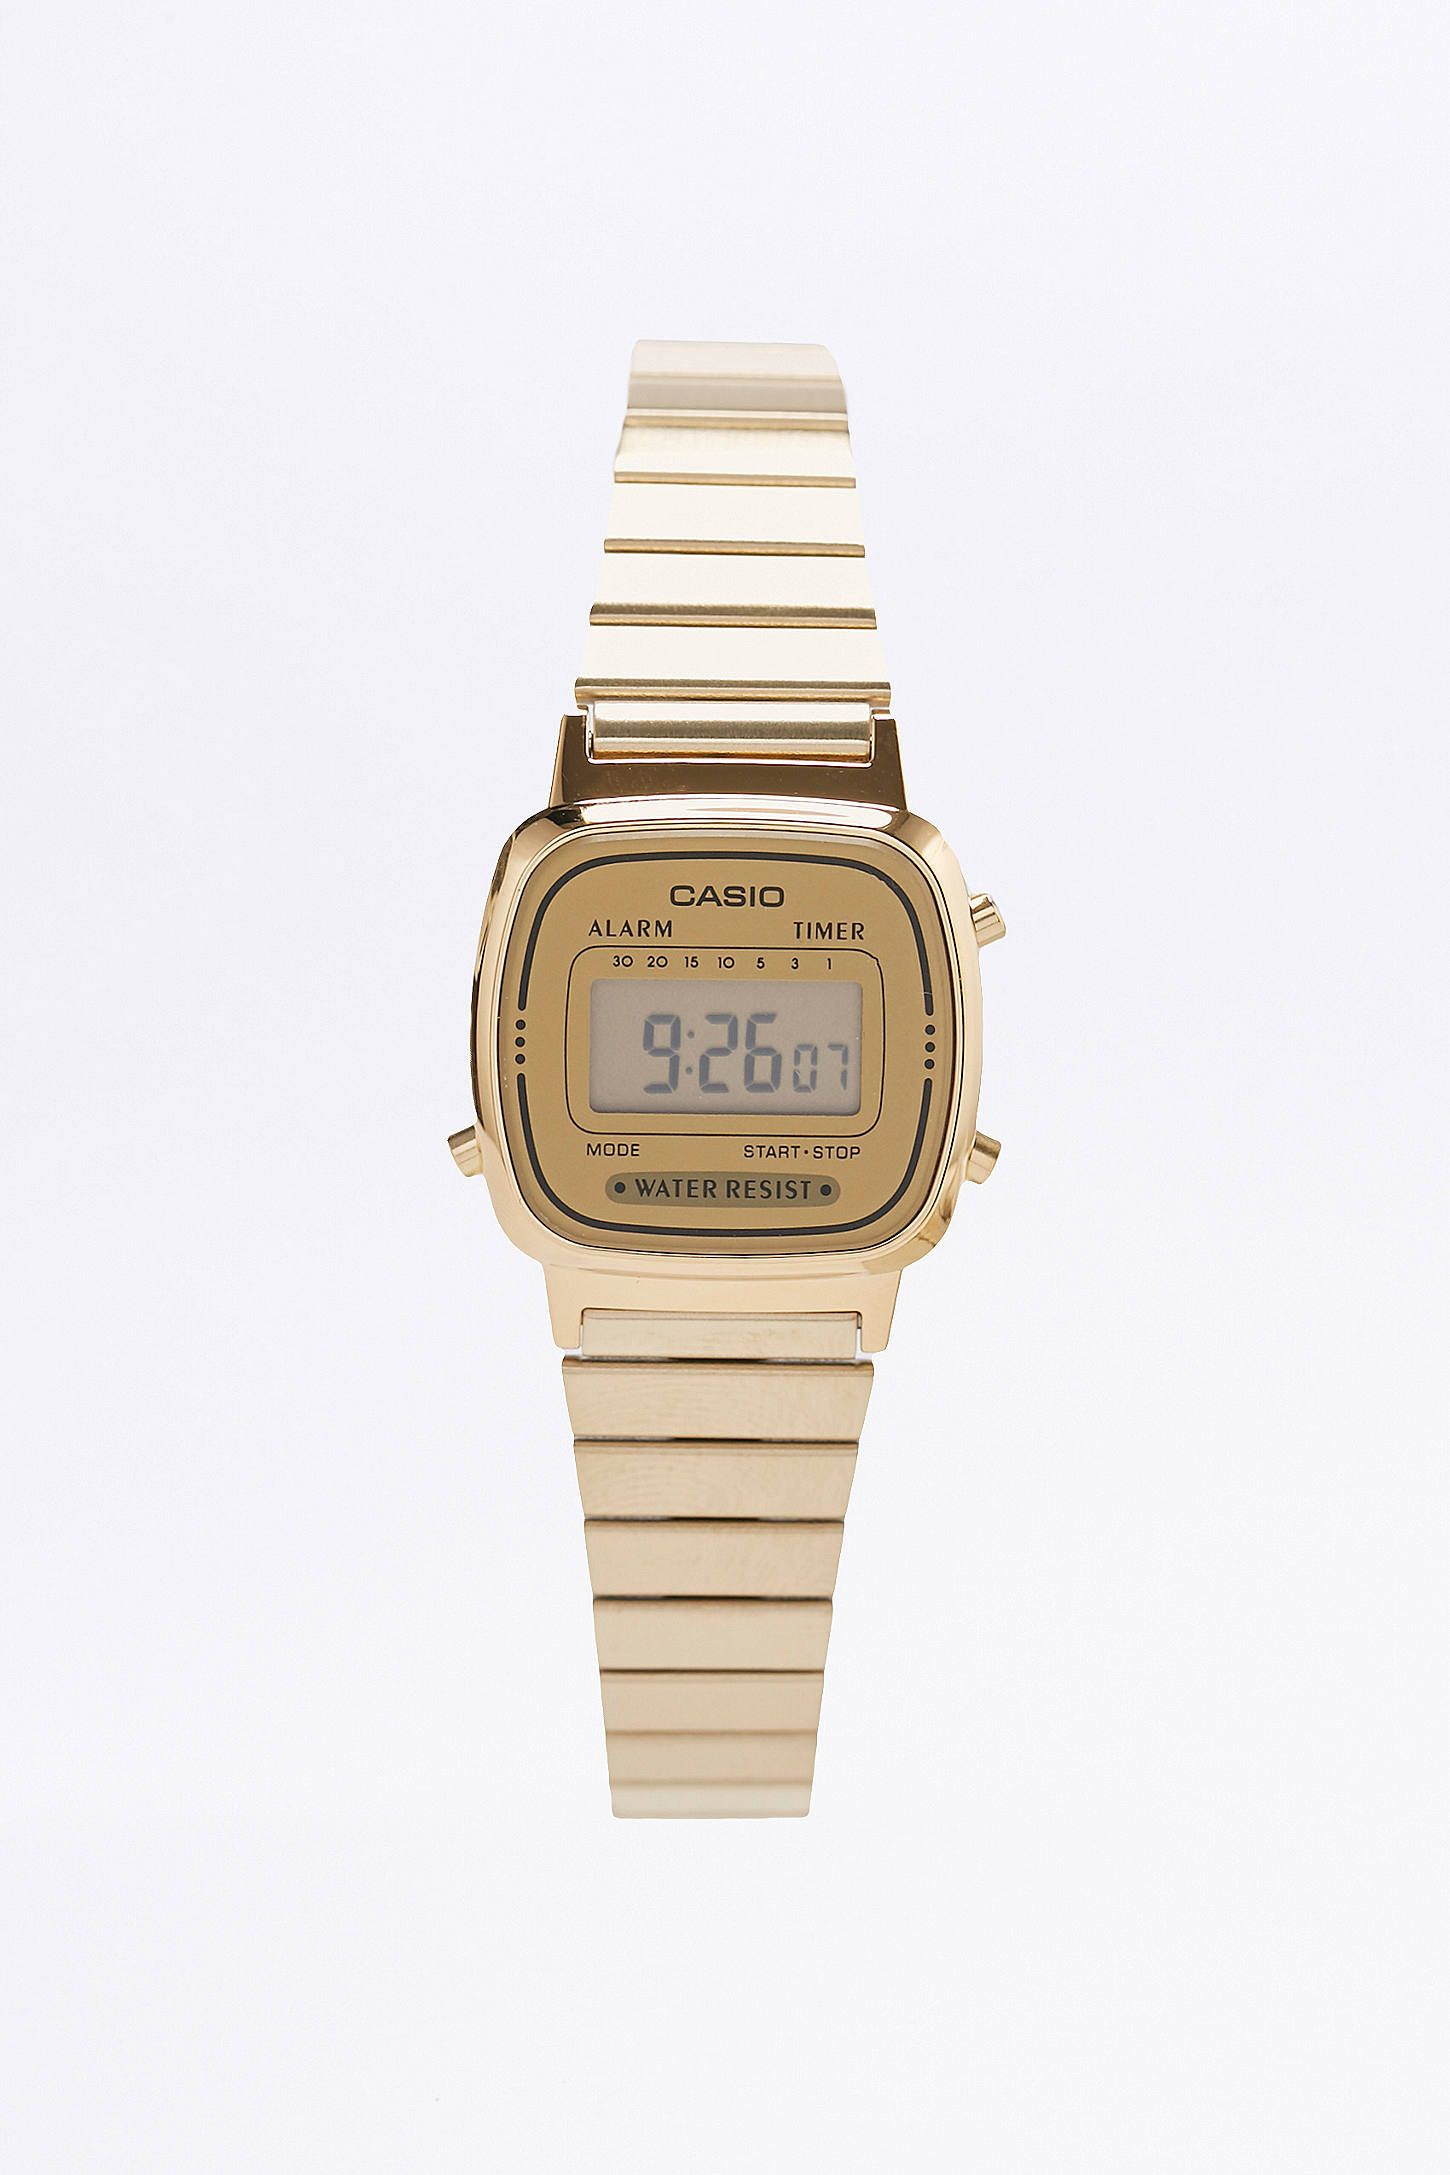 Shop Casio Gold Face Watch At Urban Outfitters Today We Carry All The Latest Styles Colours And Brands For You To Choose Fr Casio Gold Casio Gold Watch Casio